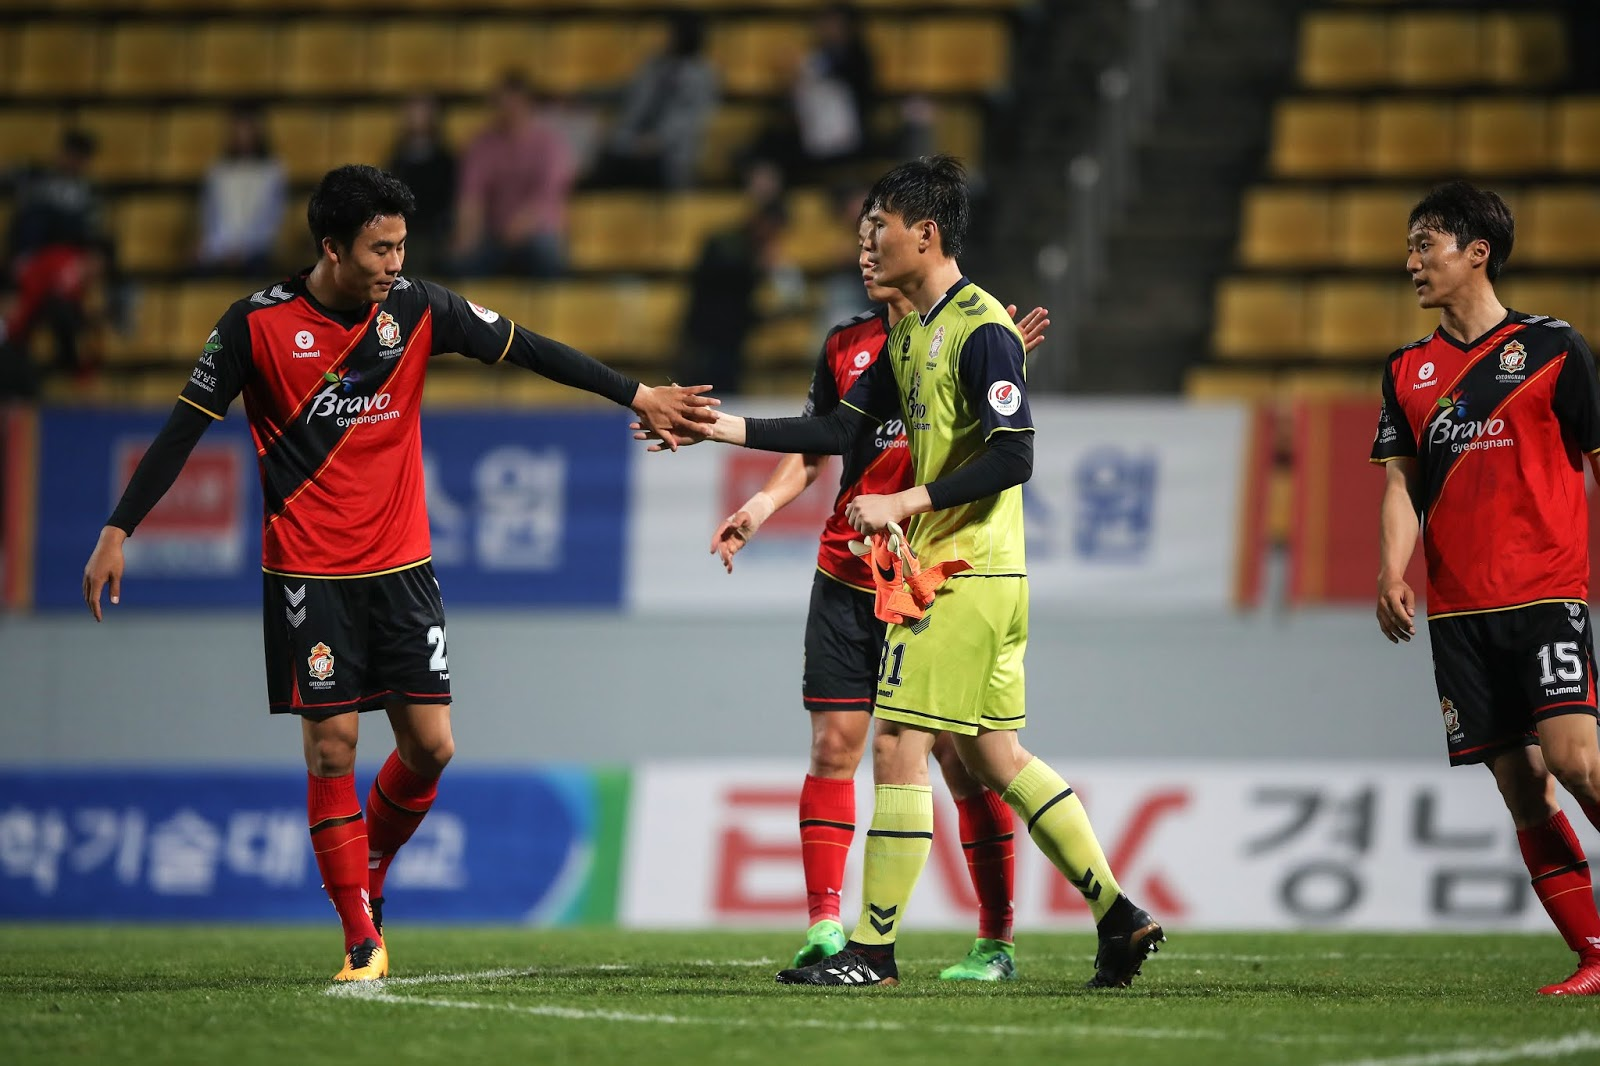 K League 1 Preview: Gyeongnam FC vs Gangwon FC